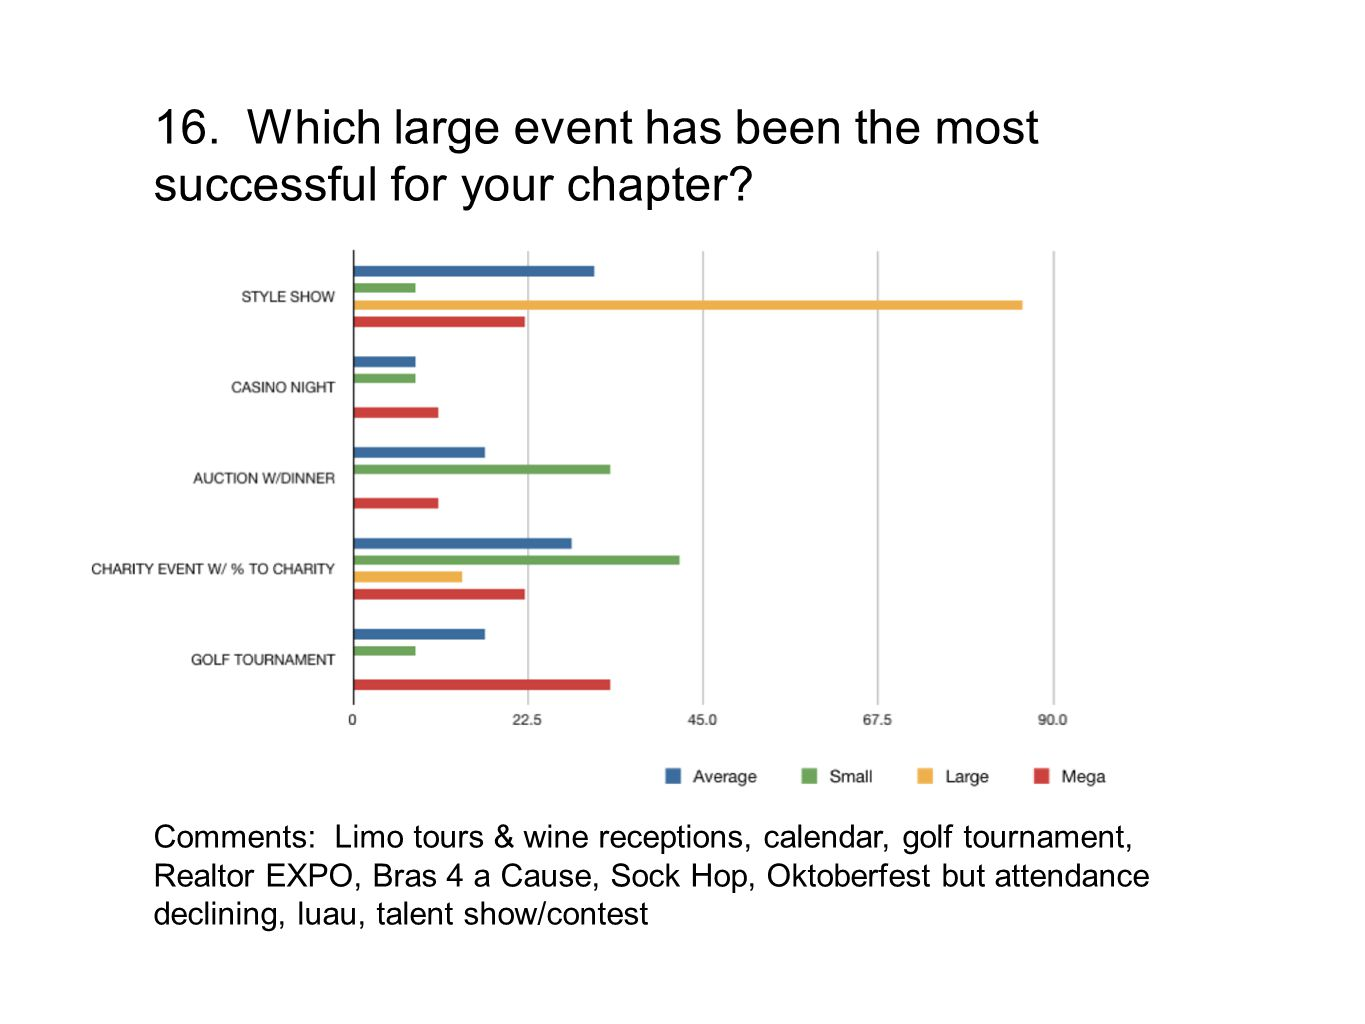 16. Which large event has been the most successful for your chapter.